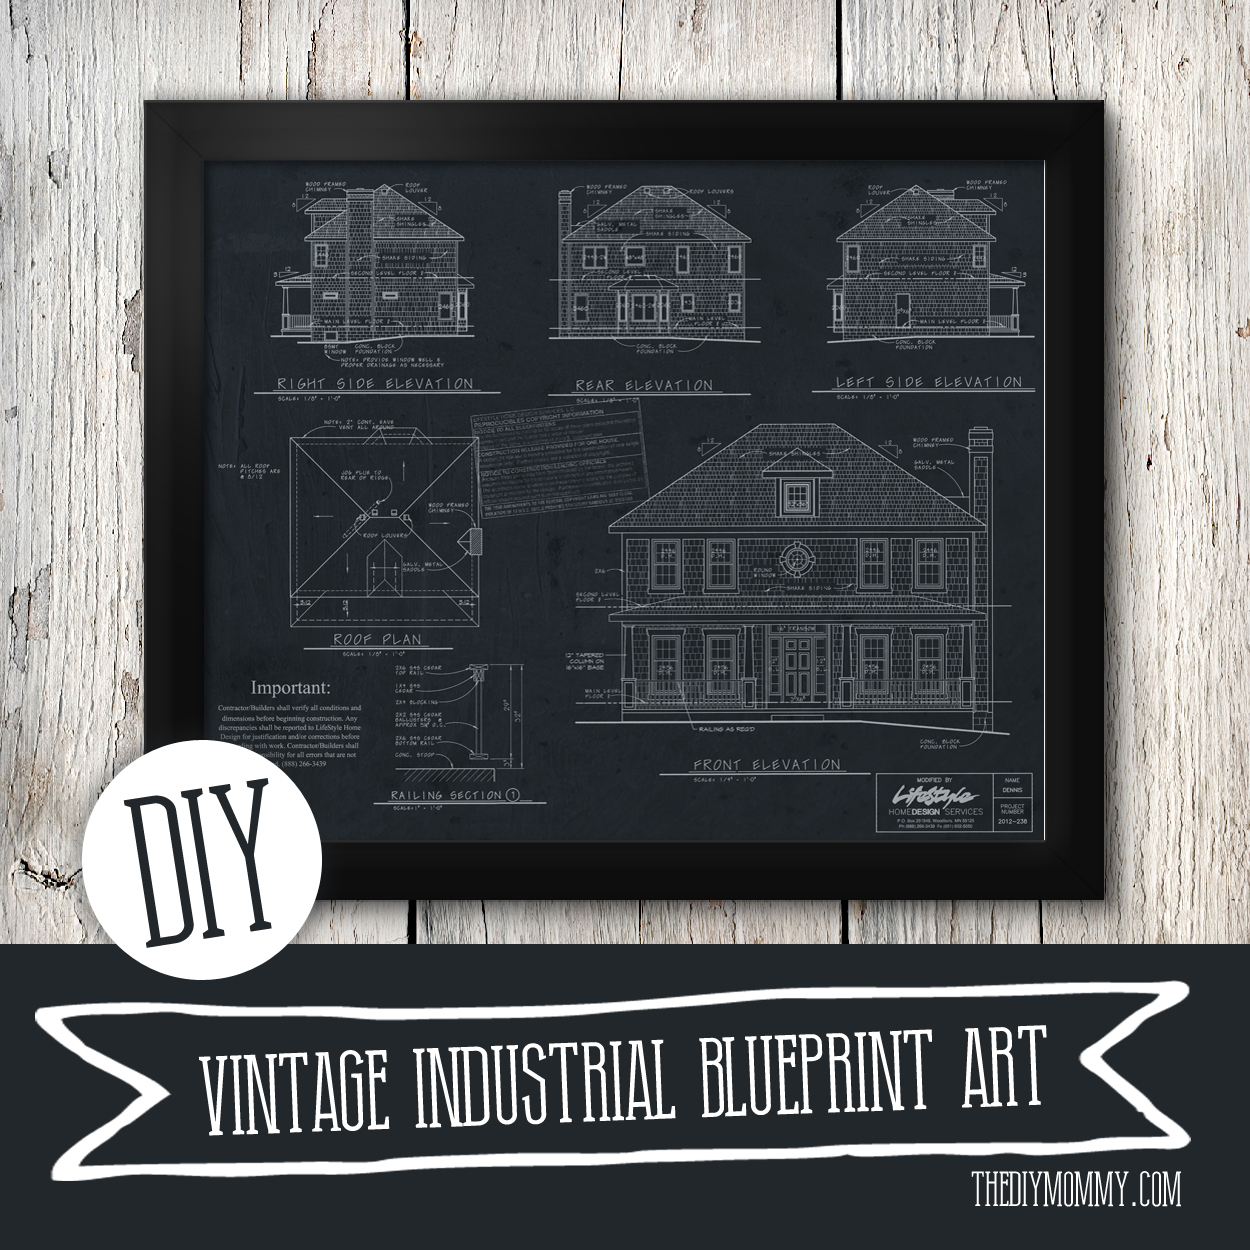 Make vintage blueprint artwork from your house plan with photoshop how to make restoration hardware inspired vintage blueprint artwork from your house plan malvernweather Image collections